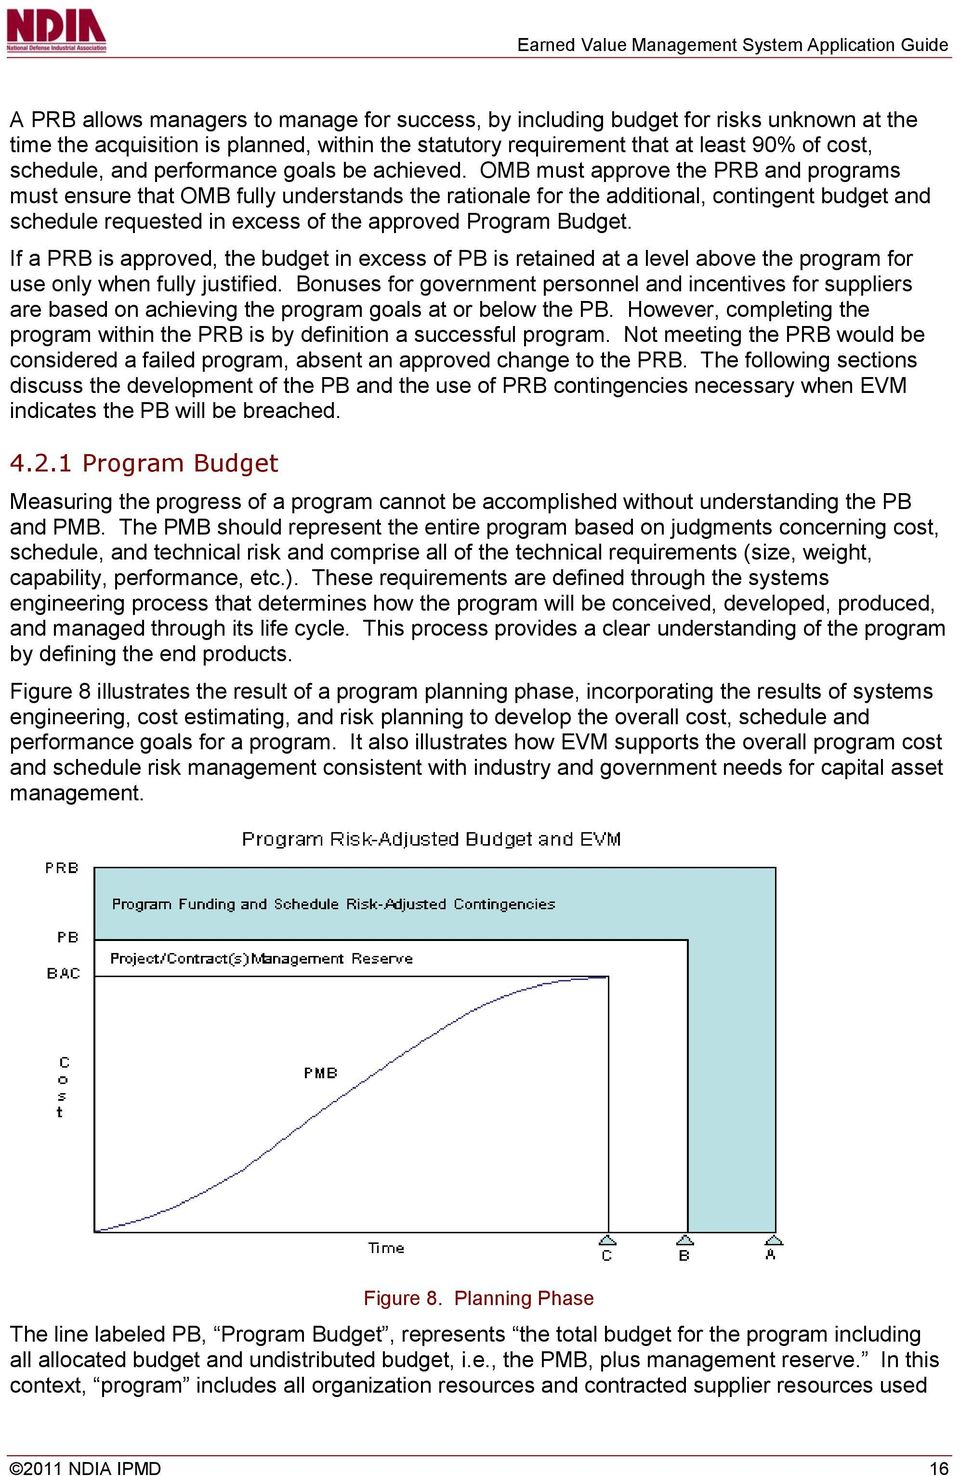 OMB must approve the PRB and programs must ensure that OMB fully understands the rationale for the additional, contingent budget and schedule requested in excess of the approved Program Budget.